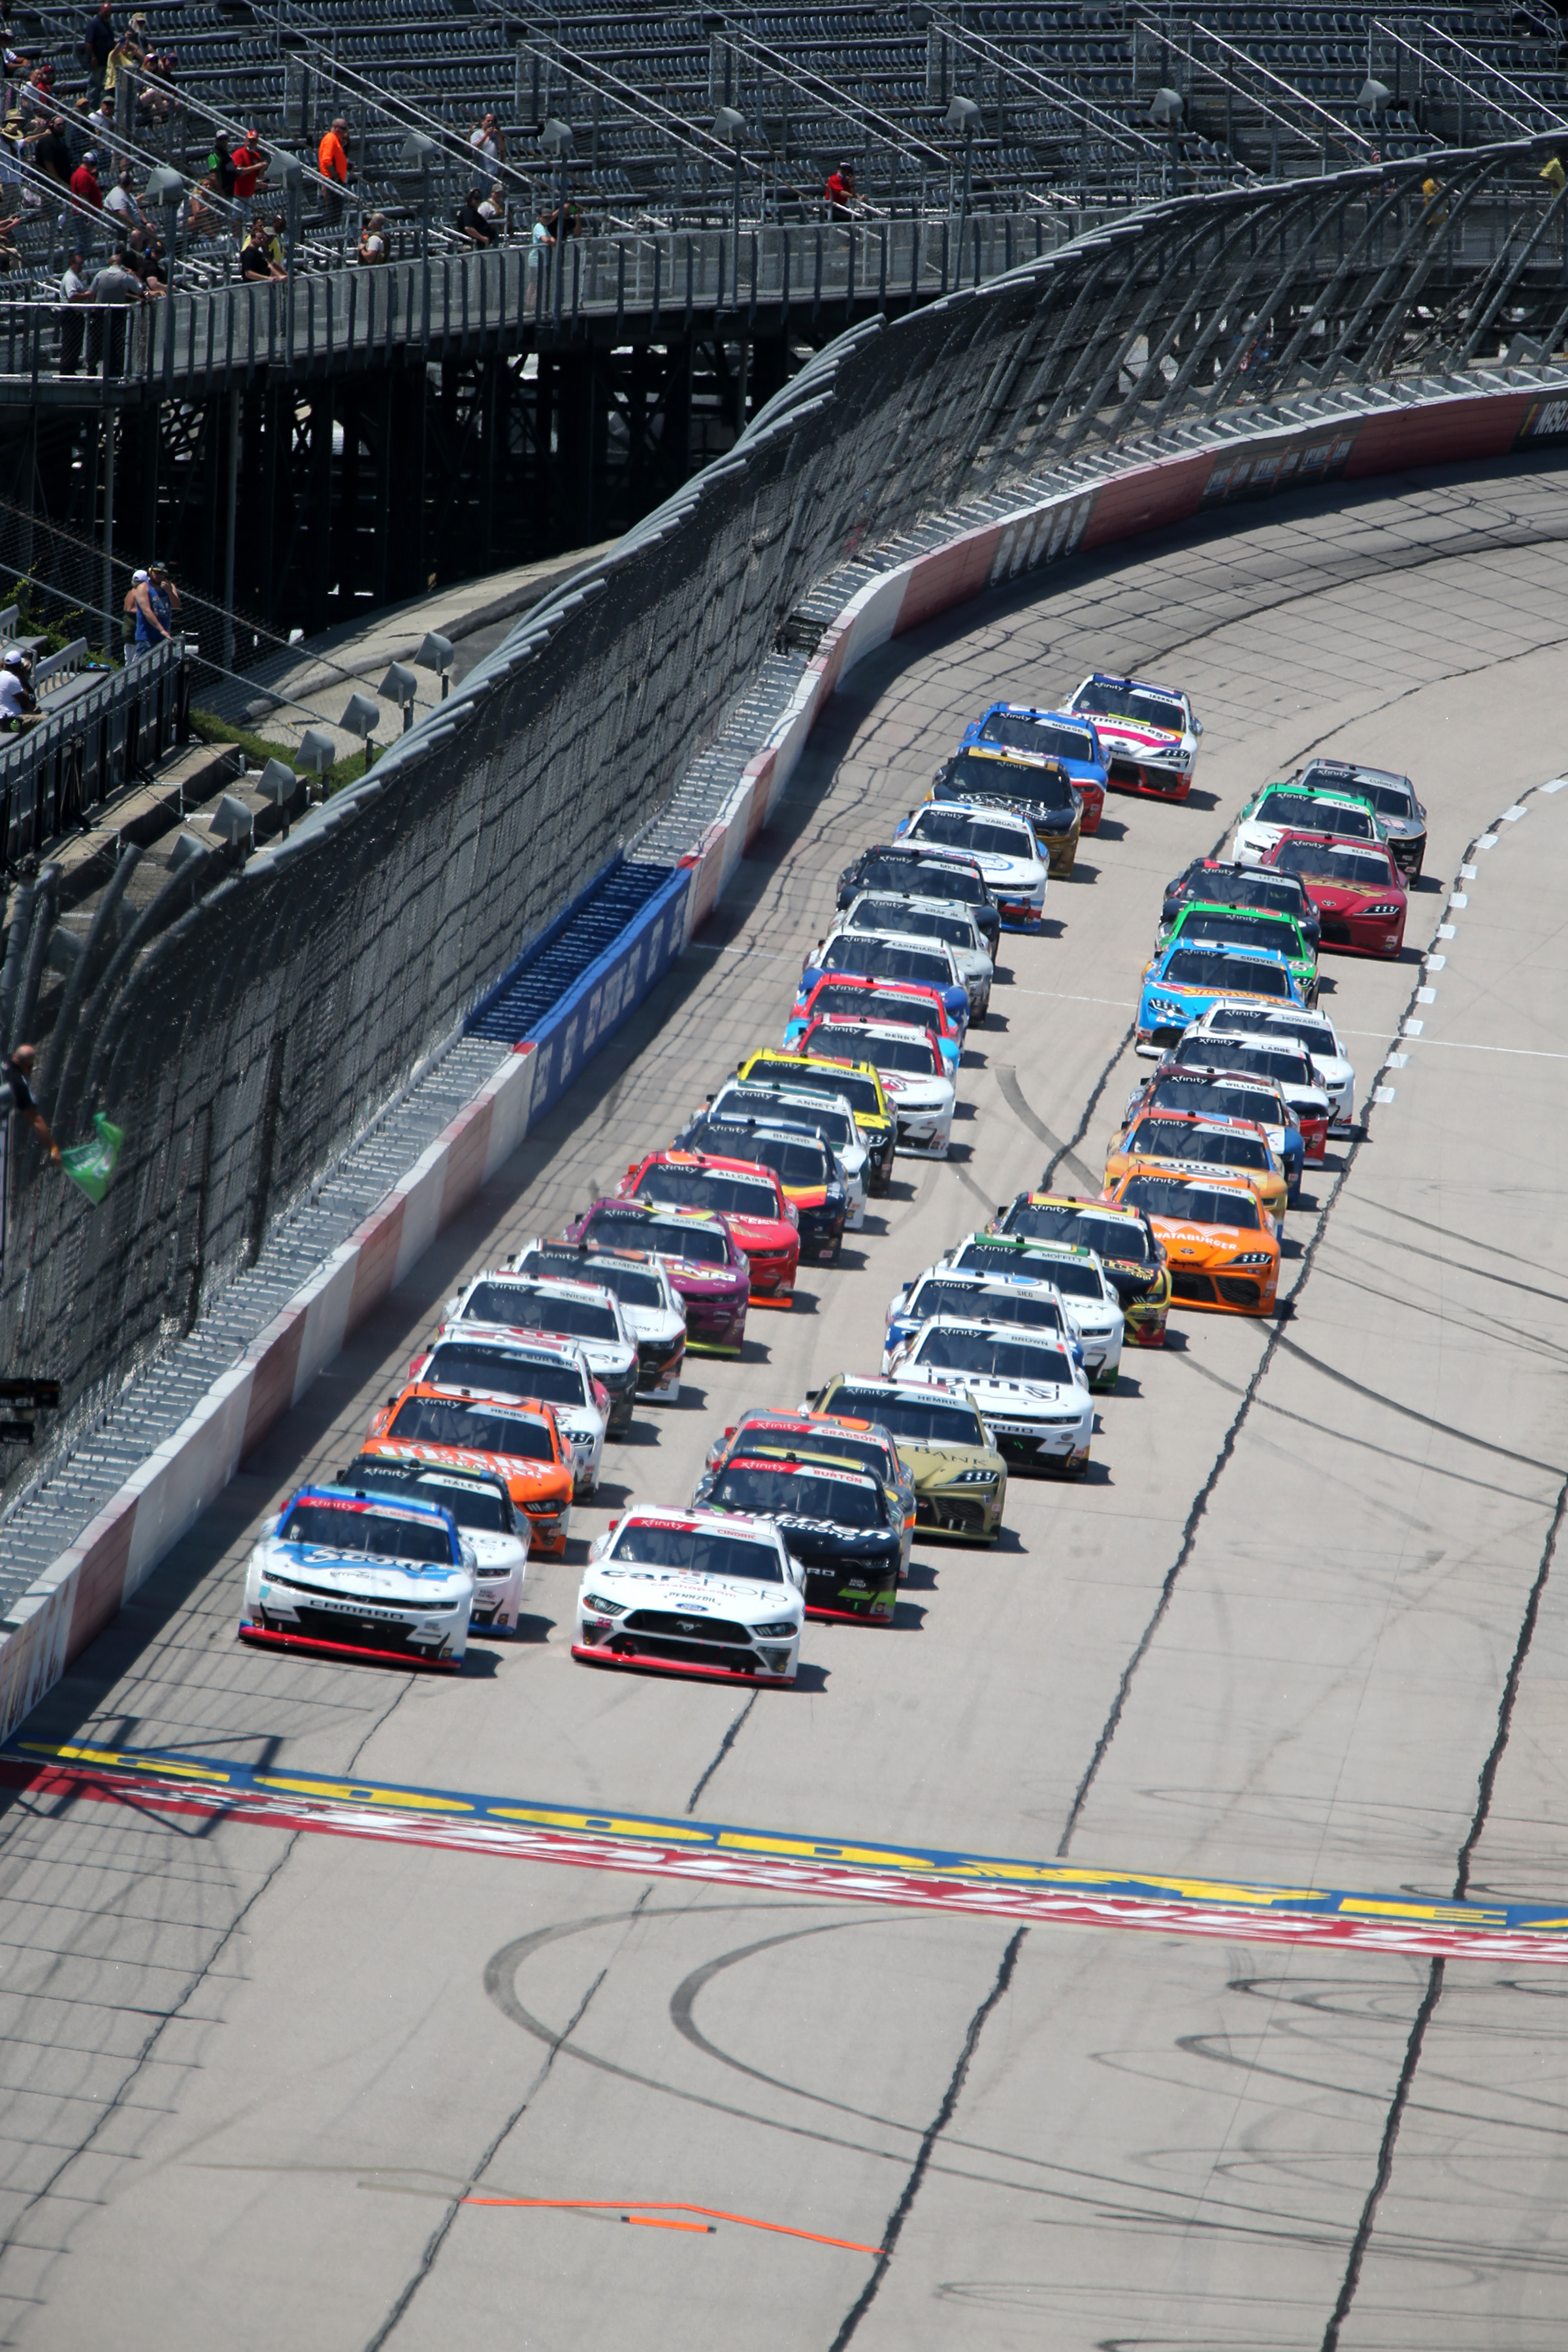 The starting field takes the green flag during the running of the Steakhouse Elite 200 on May 8, 2021 at Darlington Raceway in Darlington South Carolina